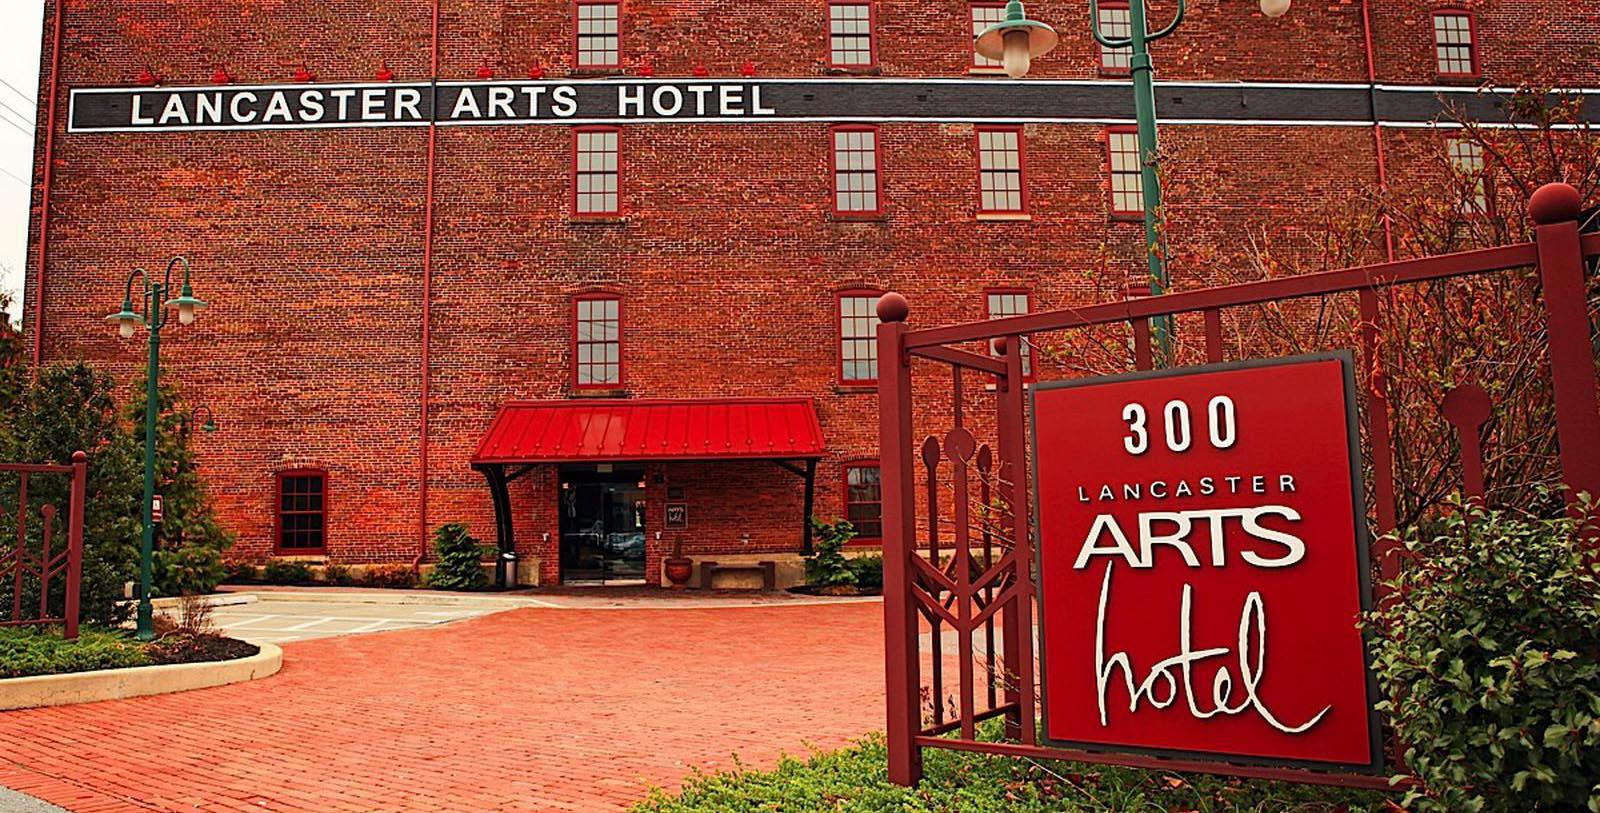 Image of Exterior, Lancaster Arts Hotel in Lancaster, Pennsylvania, 1881, Member of Historic Hotels of America, Special Offers, Discounted Rates, Families, Romantic Escape, Honeymoons, Anniversaries, Reunions